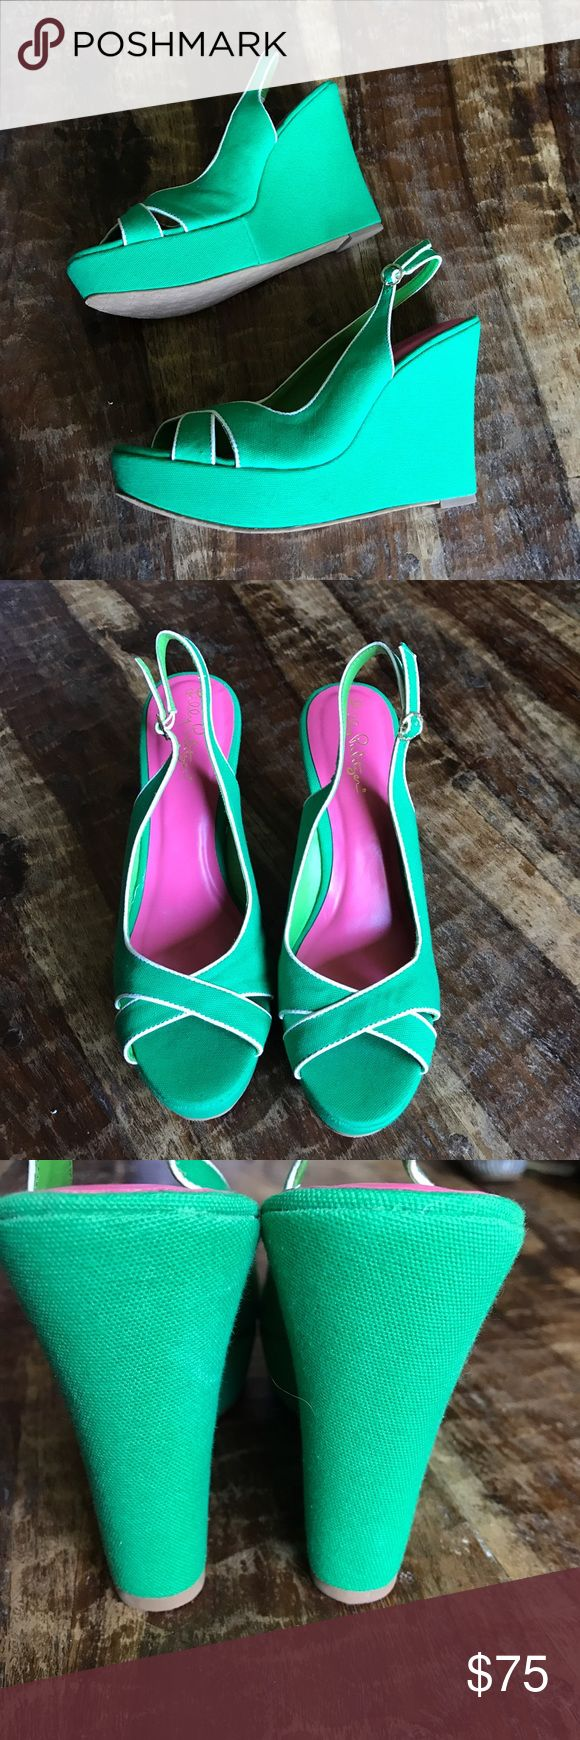 "Lilly Pulitzer Wedges Gorgeous Kelly Green Wedges in new condition. Beautiful color that's perfect for the summer. 5"" Wedge with 1"" platform. Lilly Pulitzer Shoes Wedges"